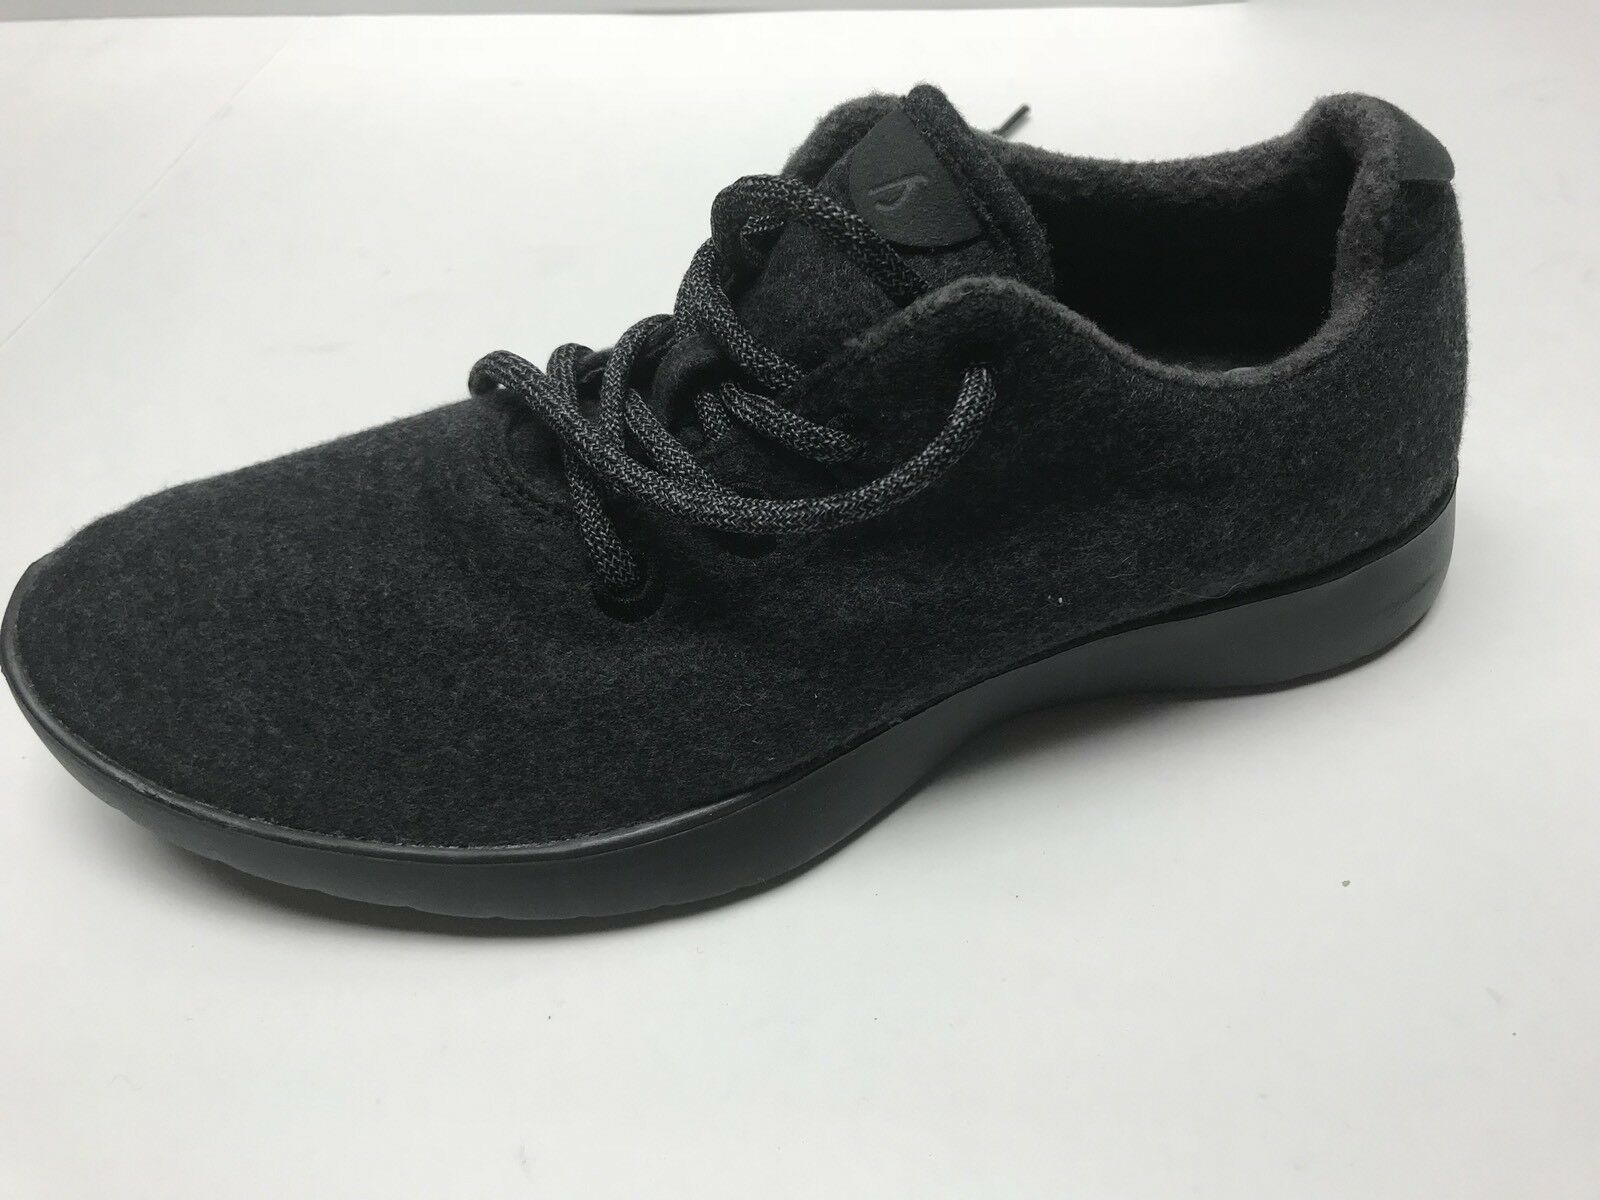 Allbirds Mens Size 10 Wool Runners Natural Black Gray Sneakers Casual Shoes NEW